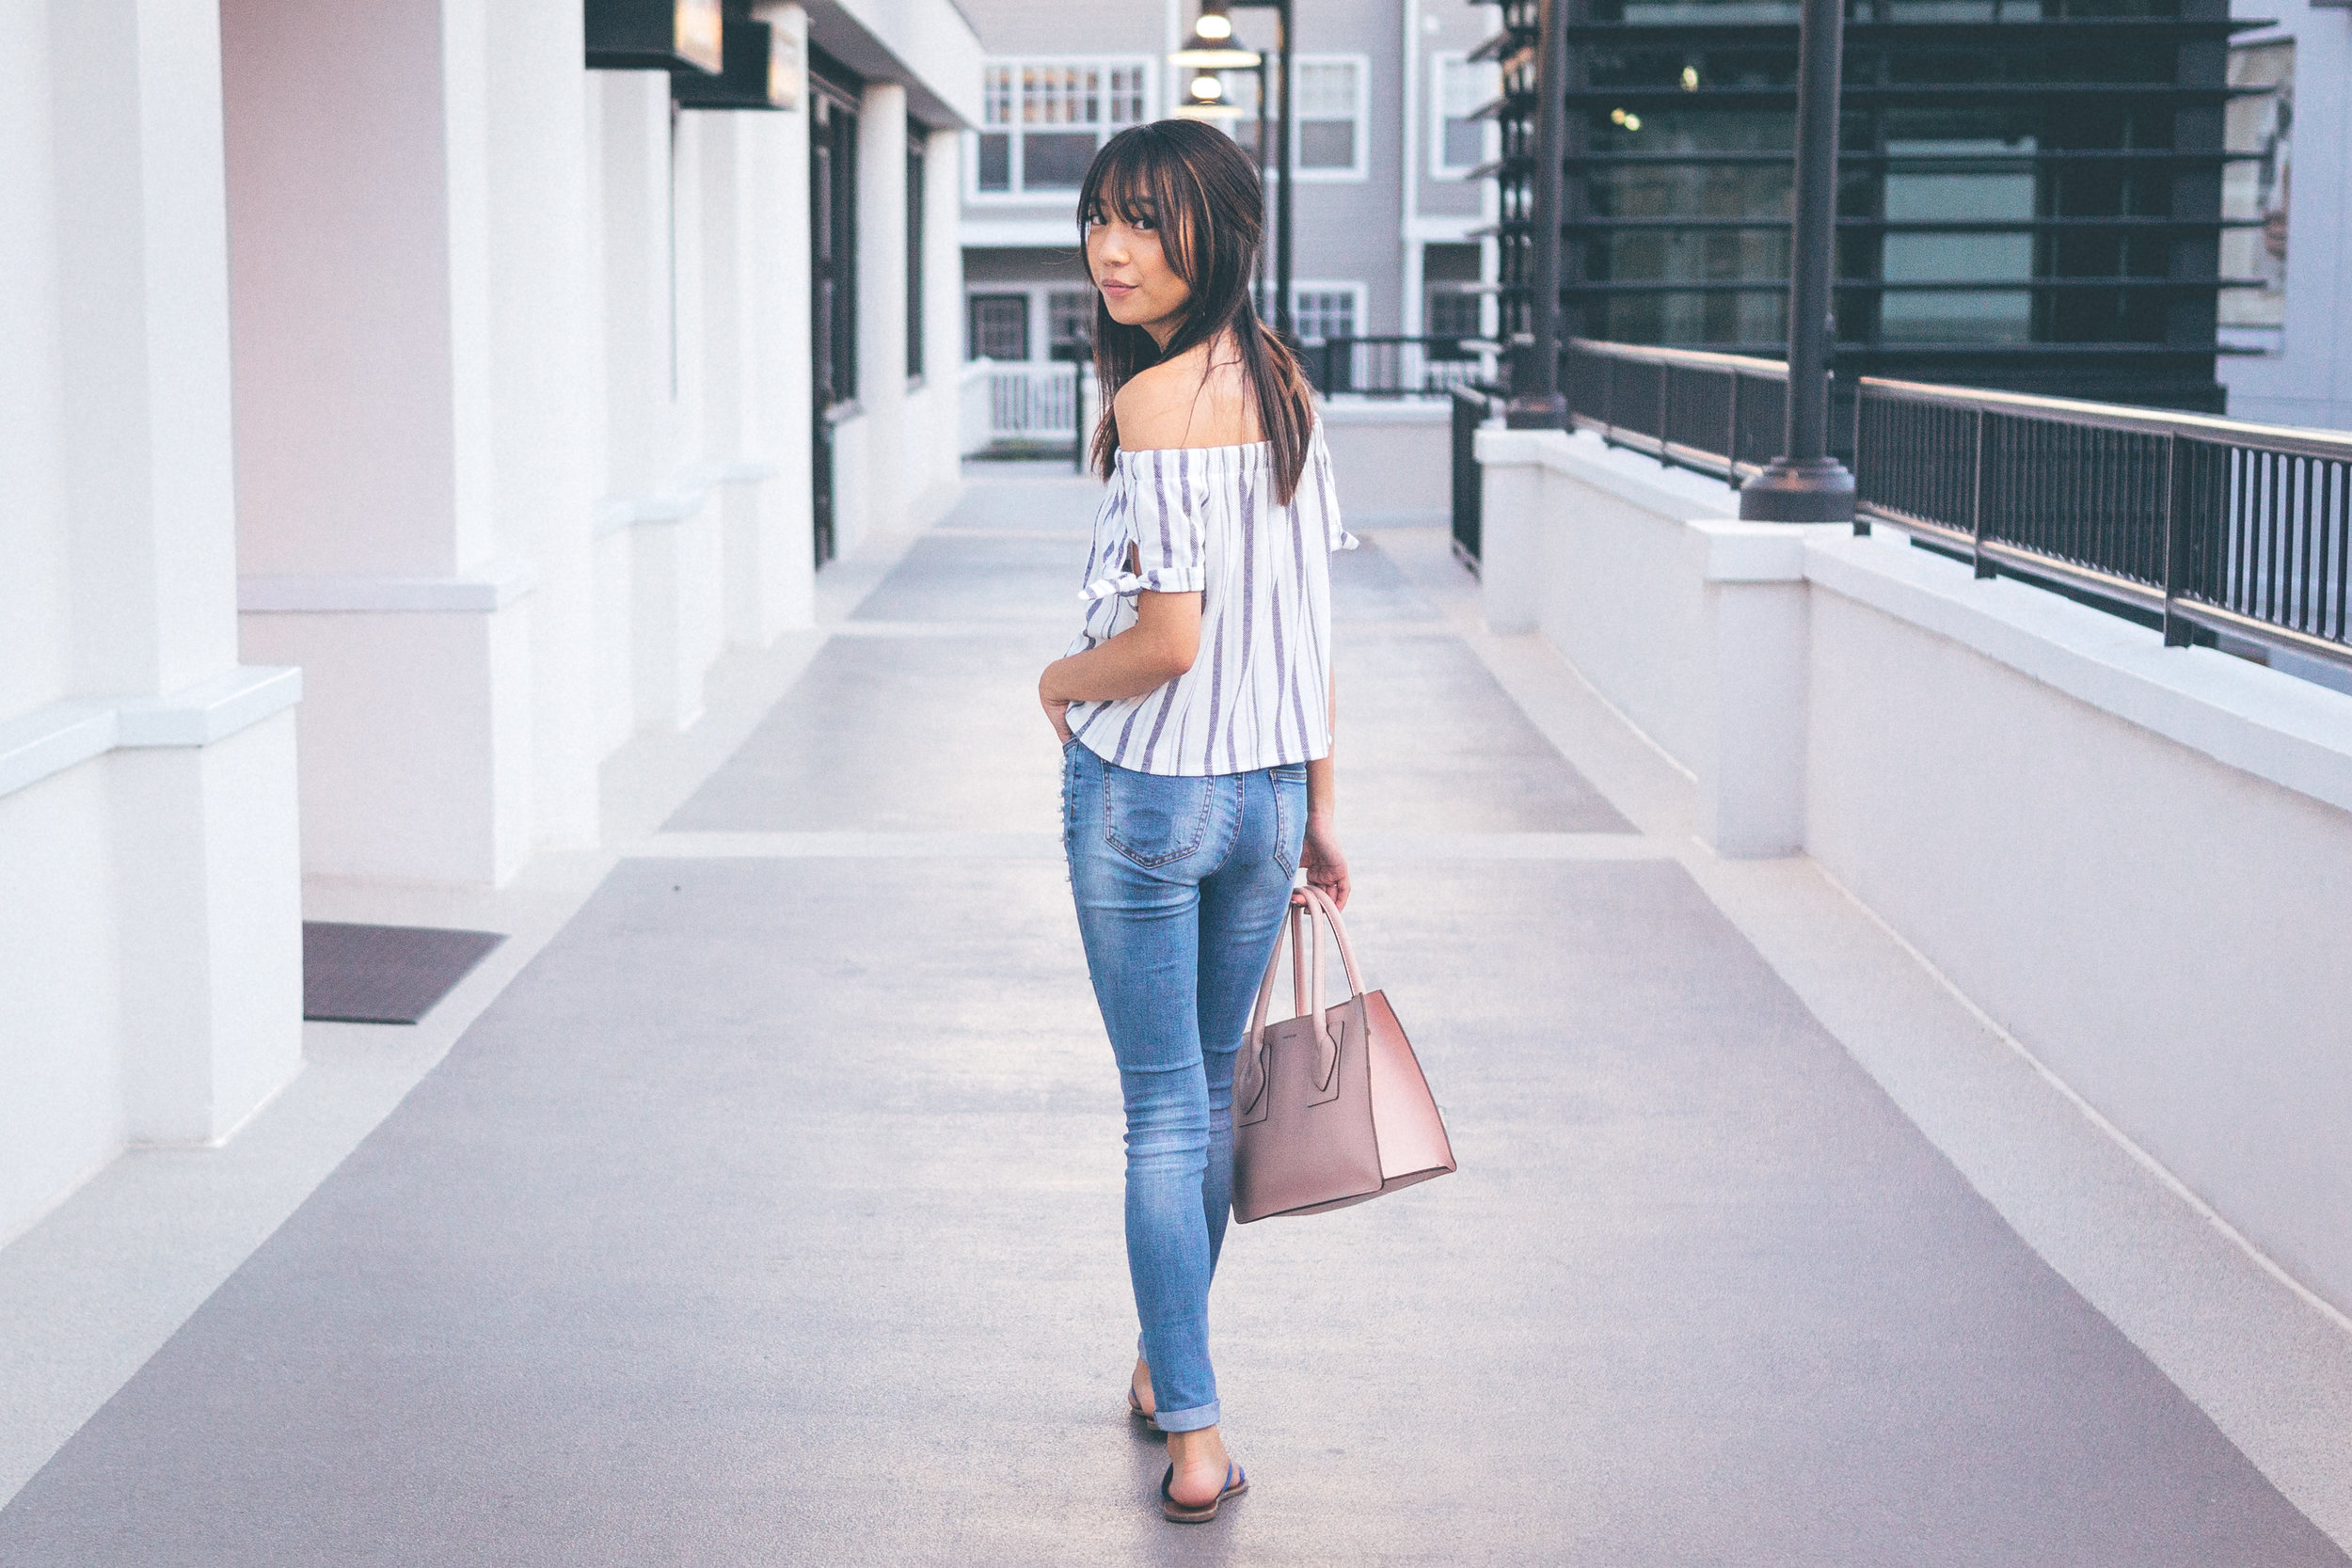 This Jenn Girl - Tampa Blogger - Pearlized Jeans 2